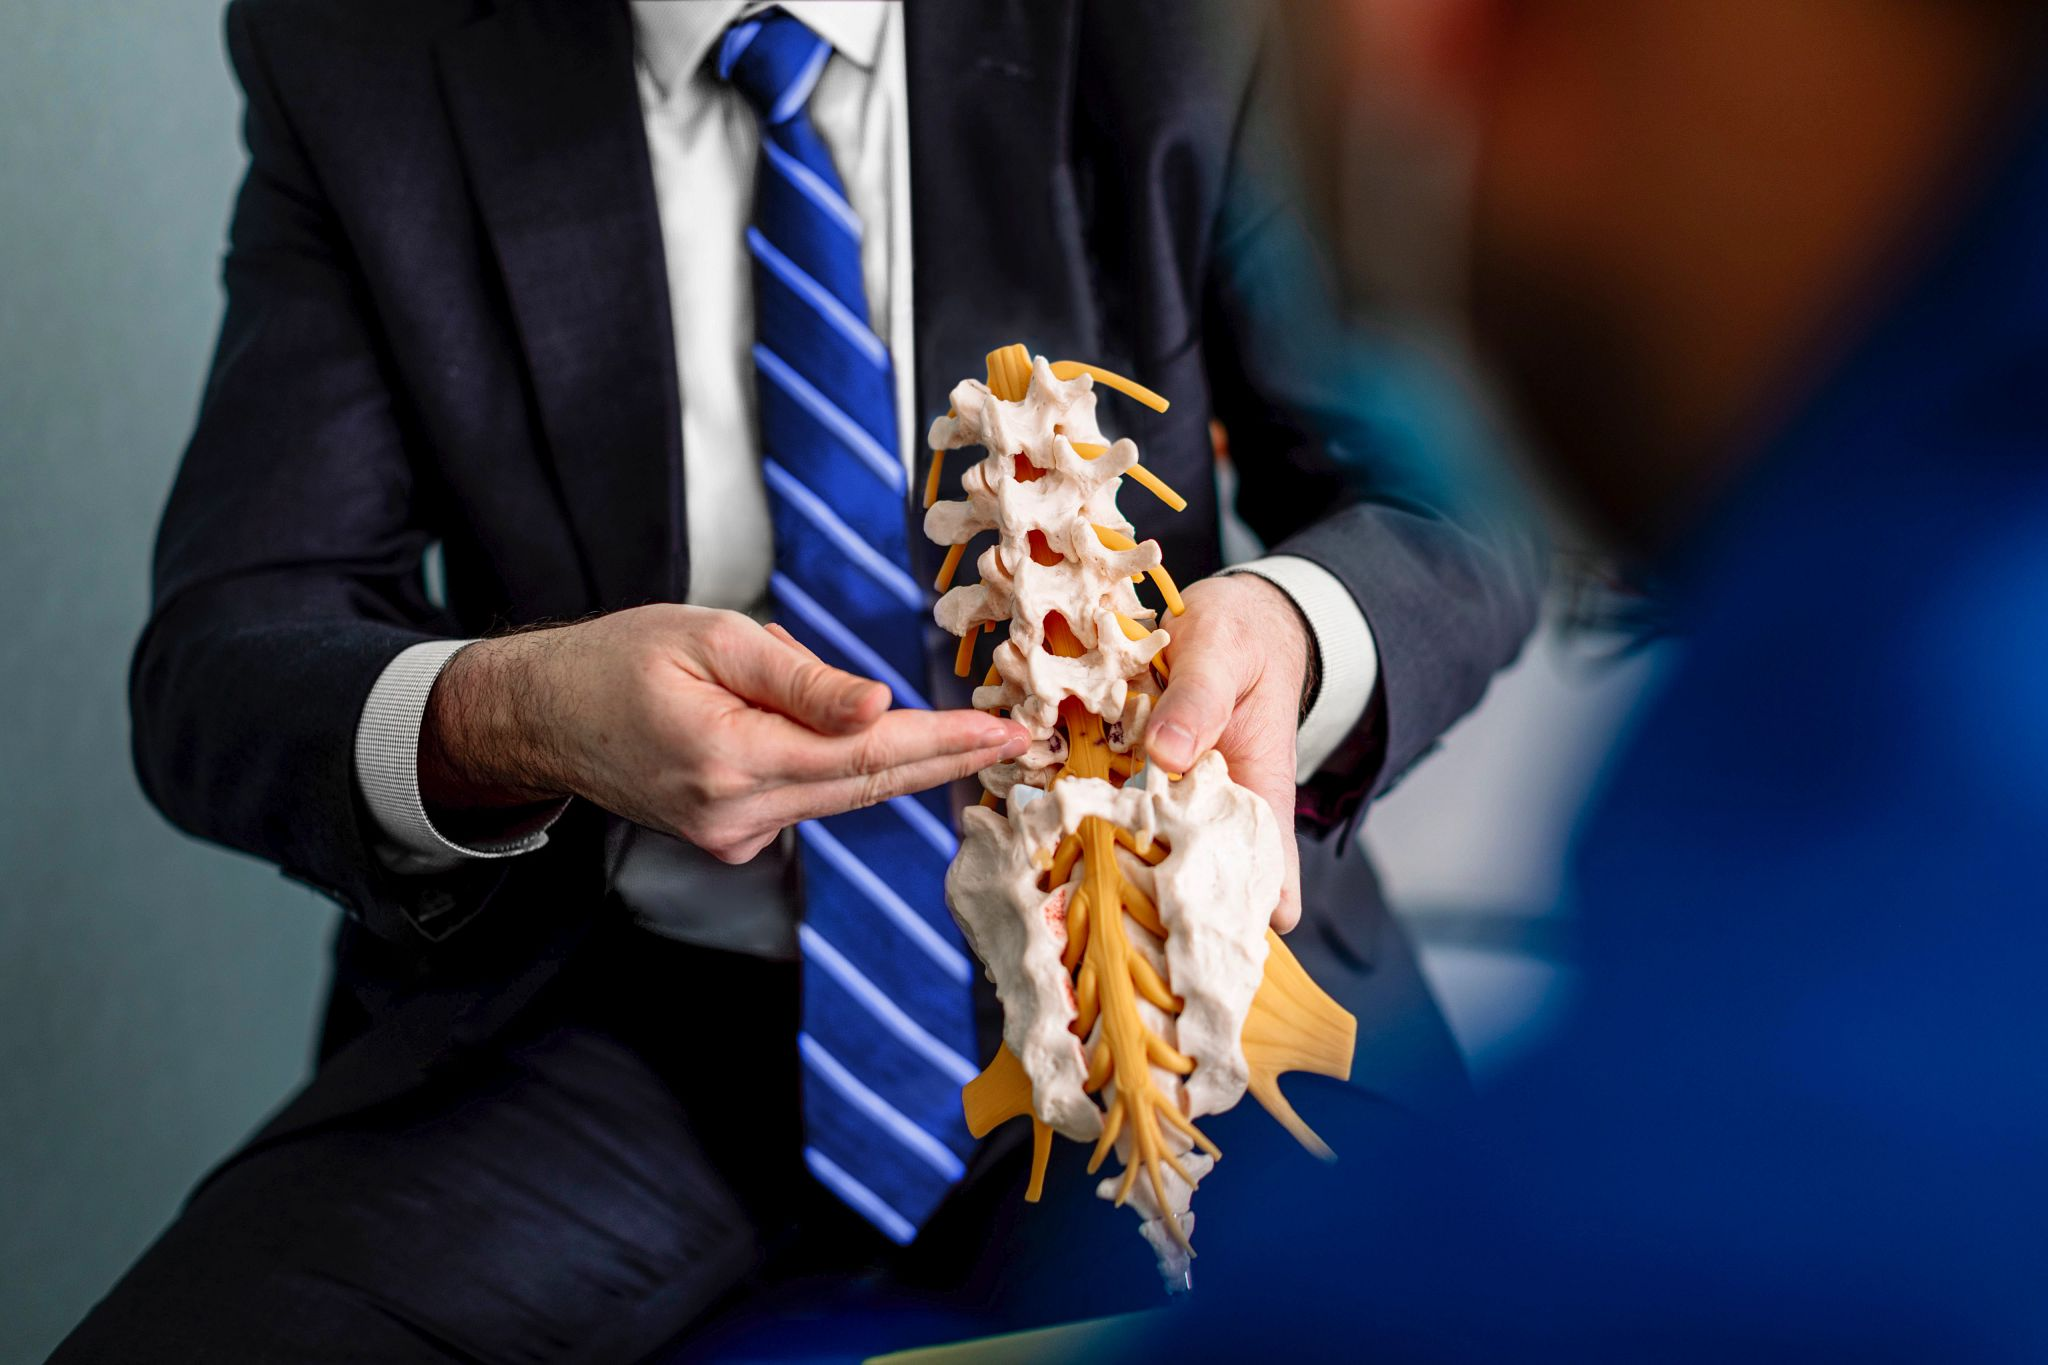 Reviewing a 3D Printed spine at a patient consult at Mayo Clinic.